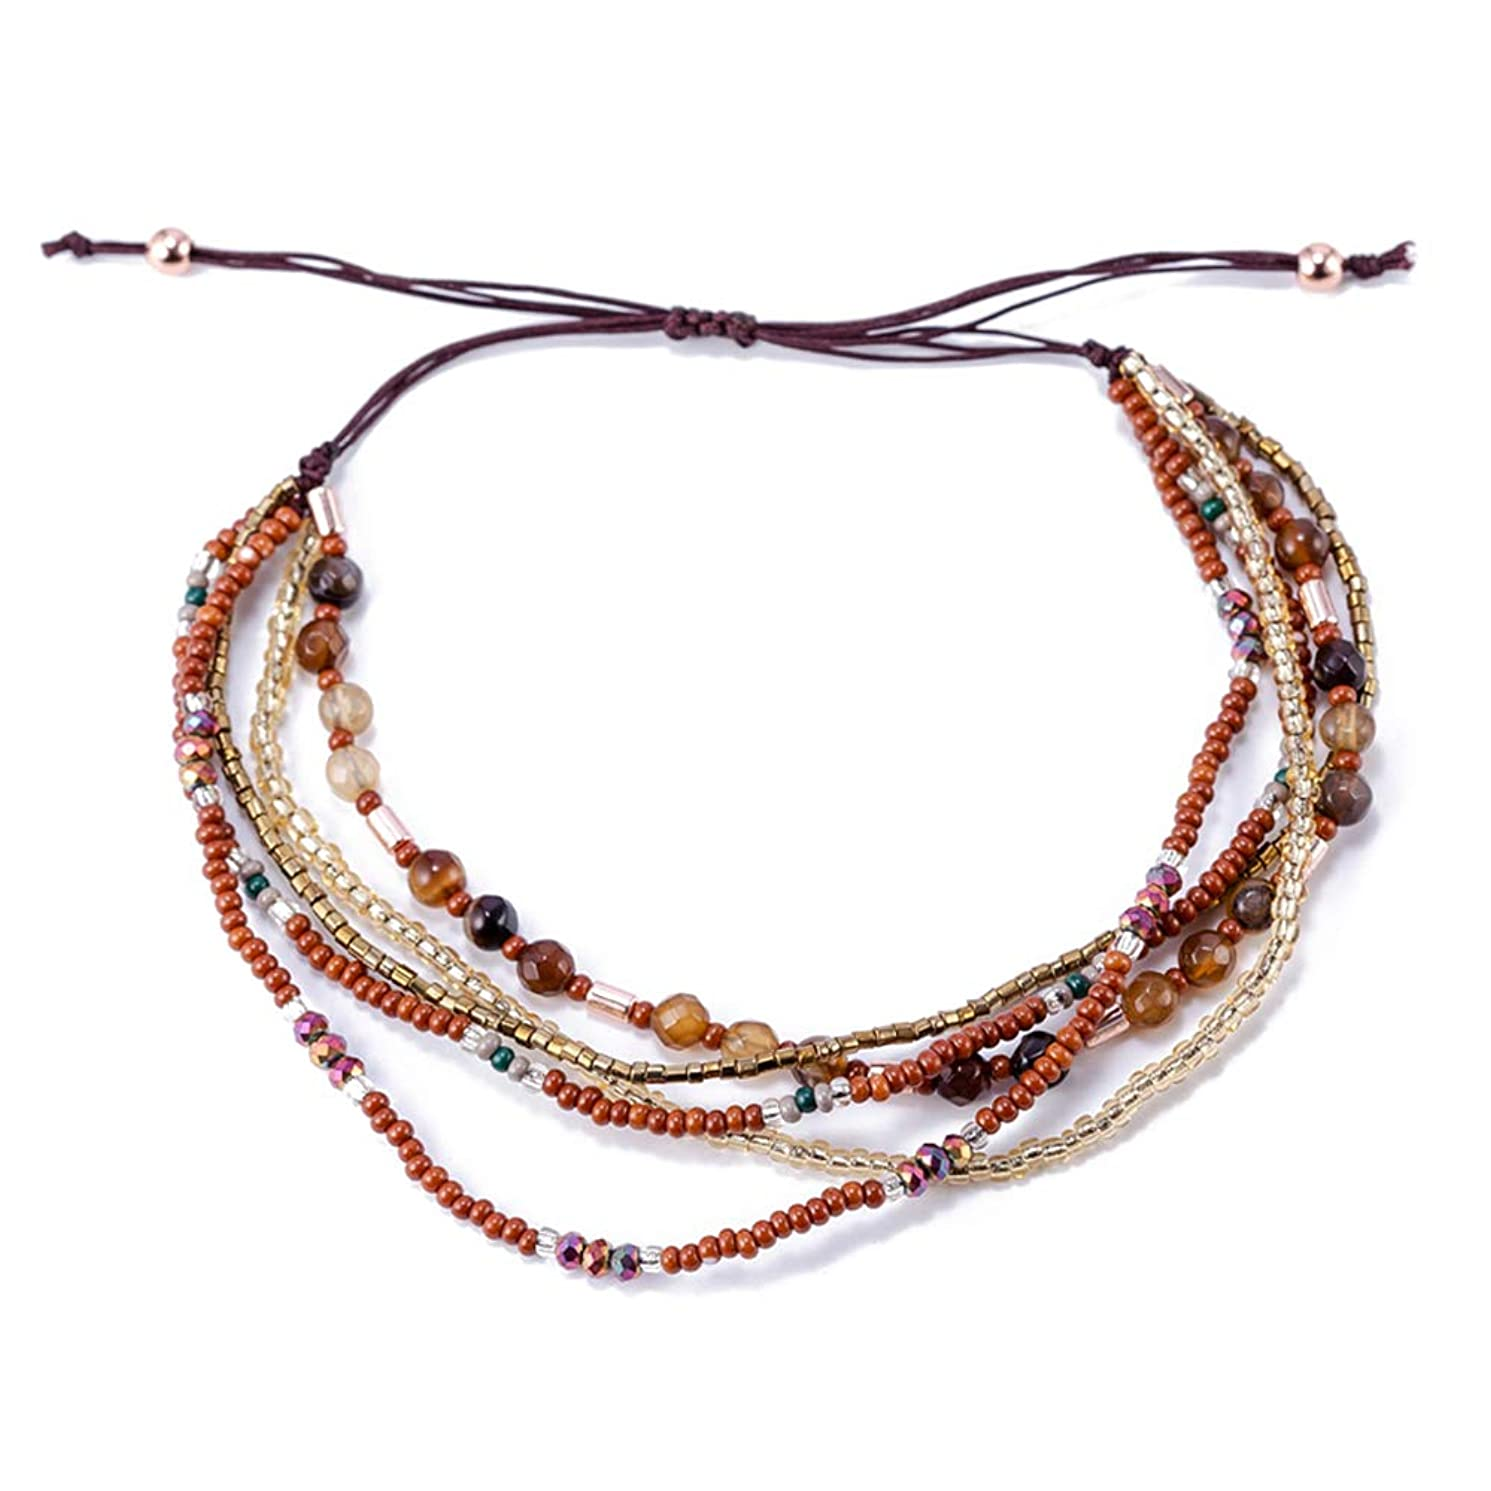 TOMLEE Multilayers Hand-Woven Colorful Beaded Chain Wrap Bracelet Adjustable Handmade String Braided Stretch Knot Crystal Beads Bracelets